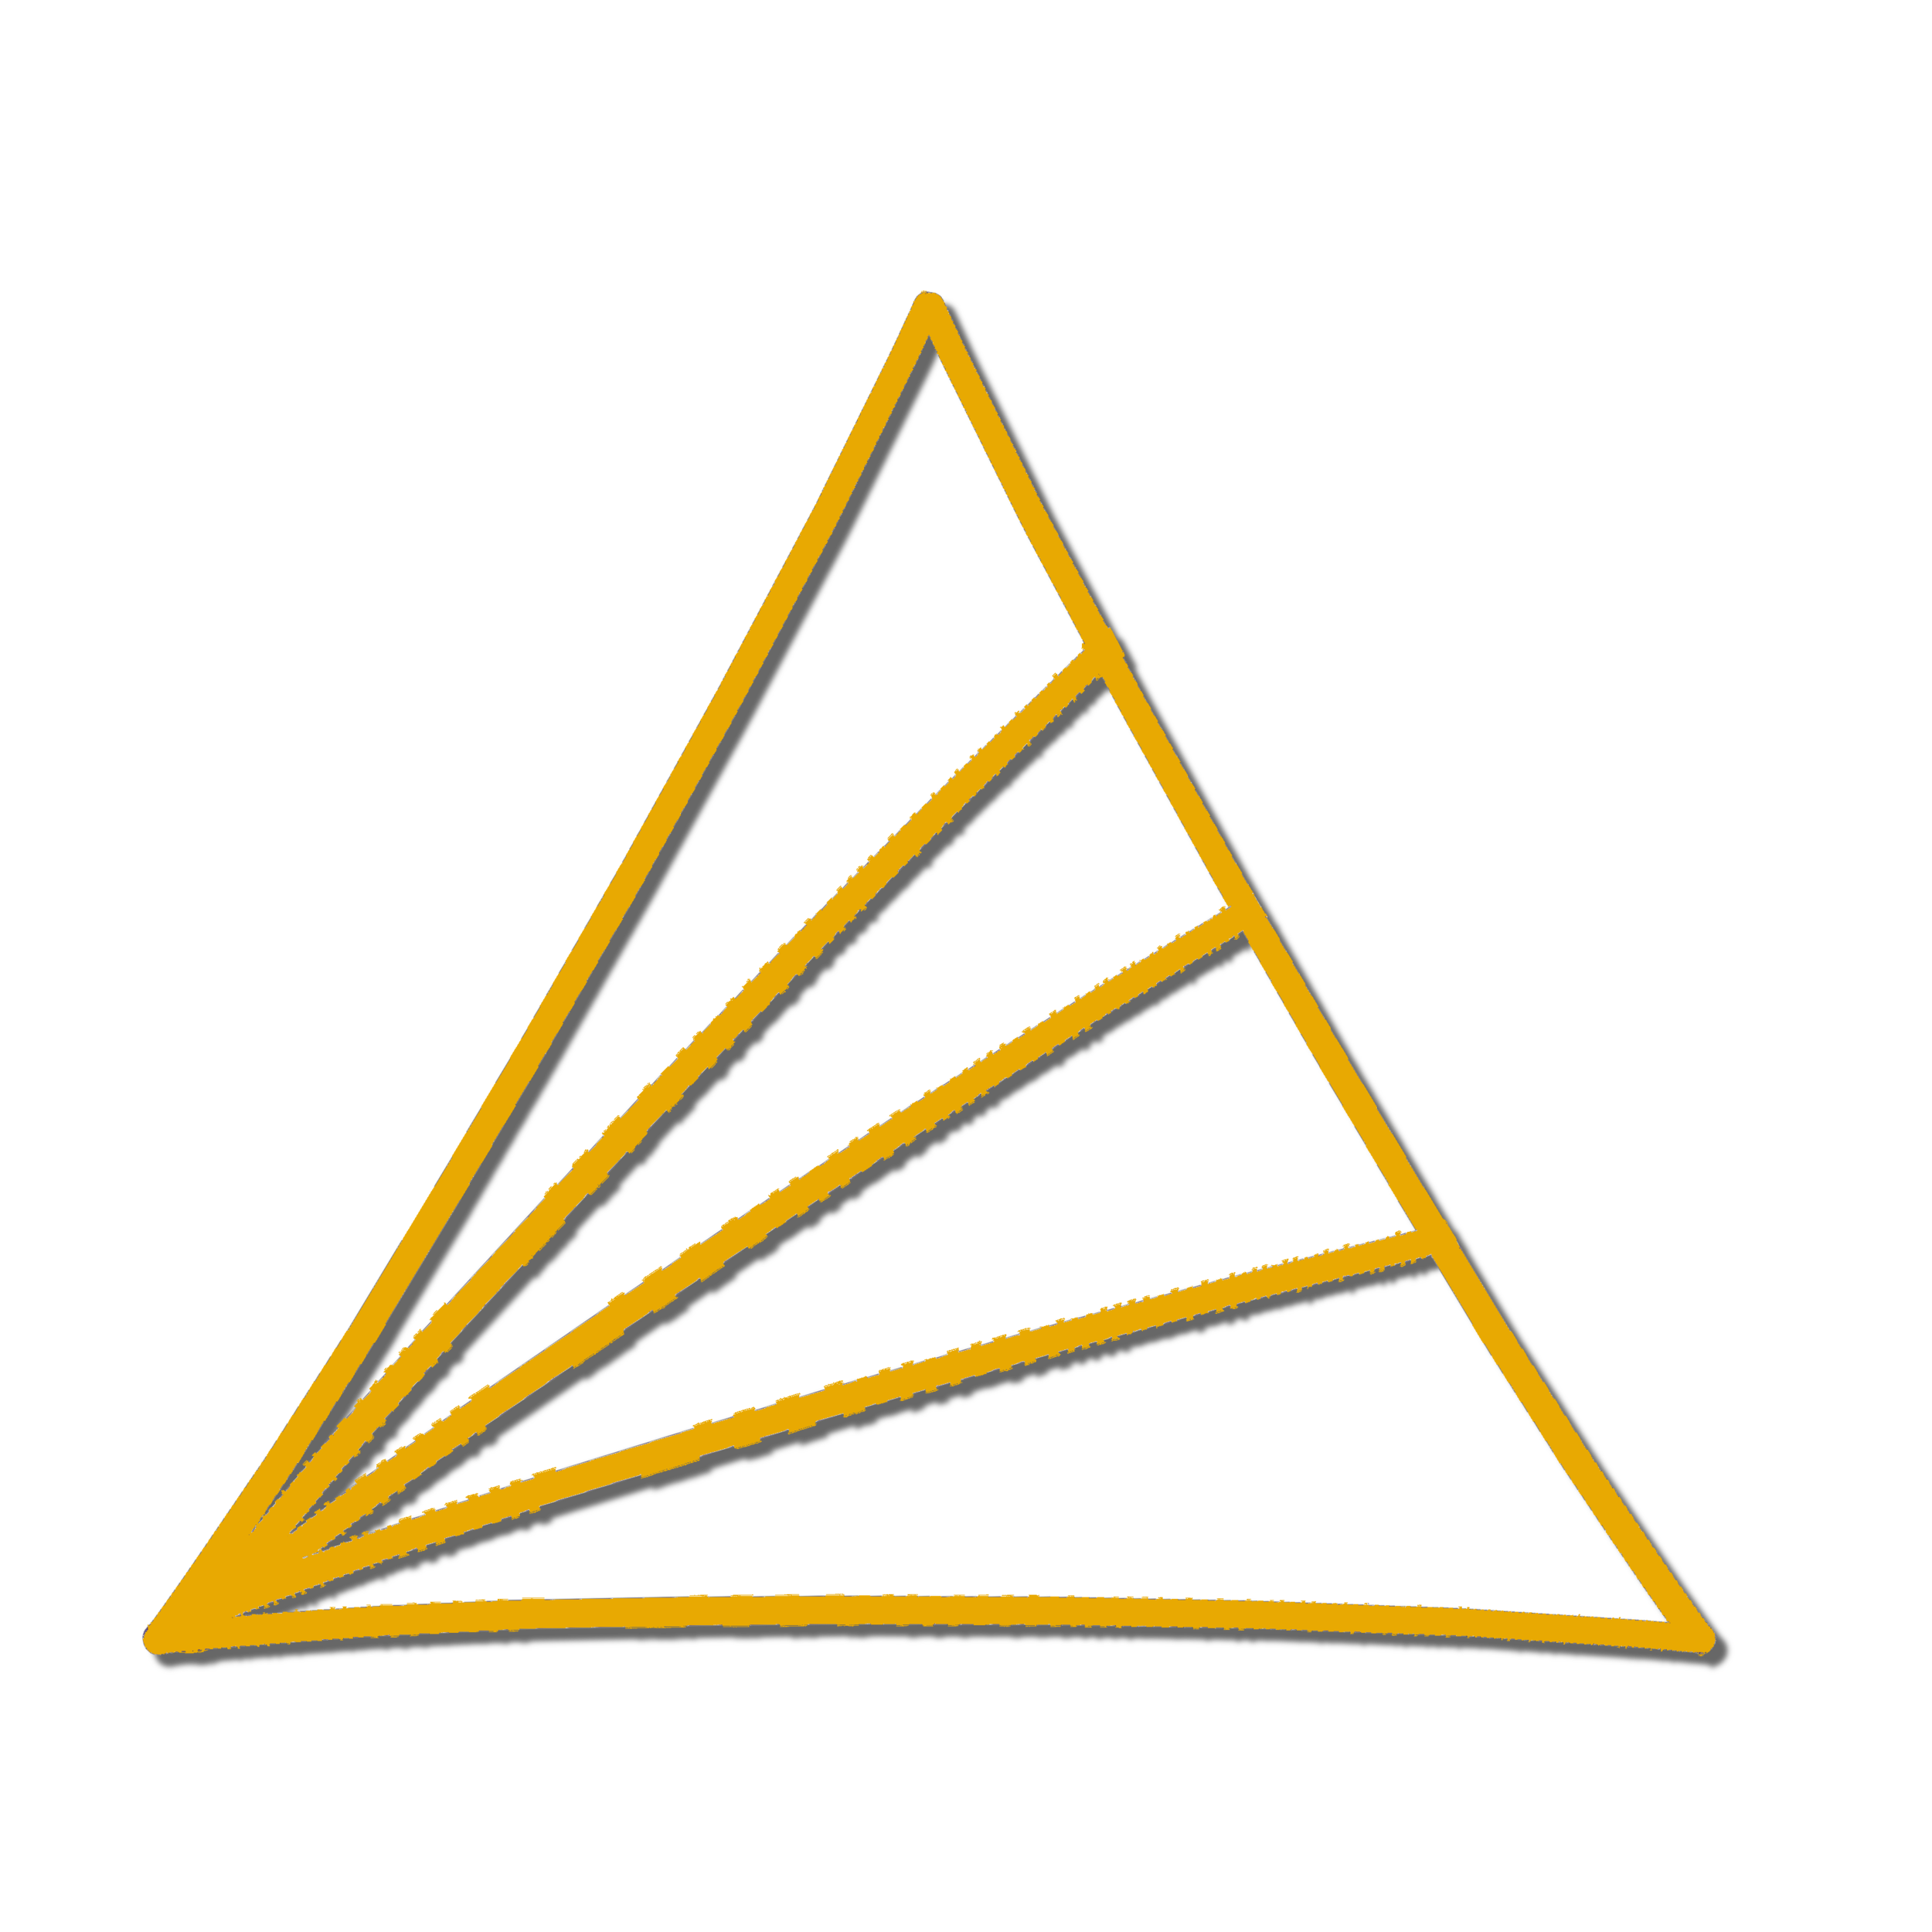 triangle-gold-dropshadow2.png